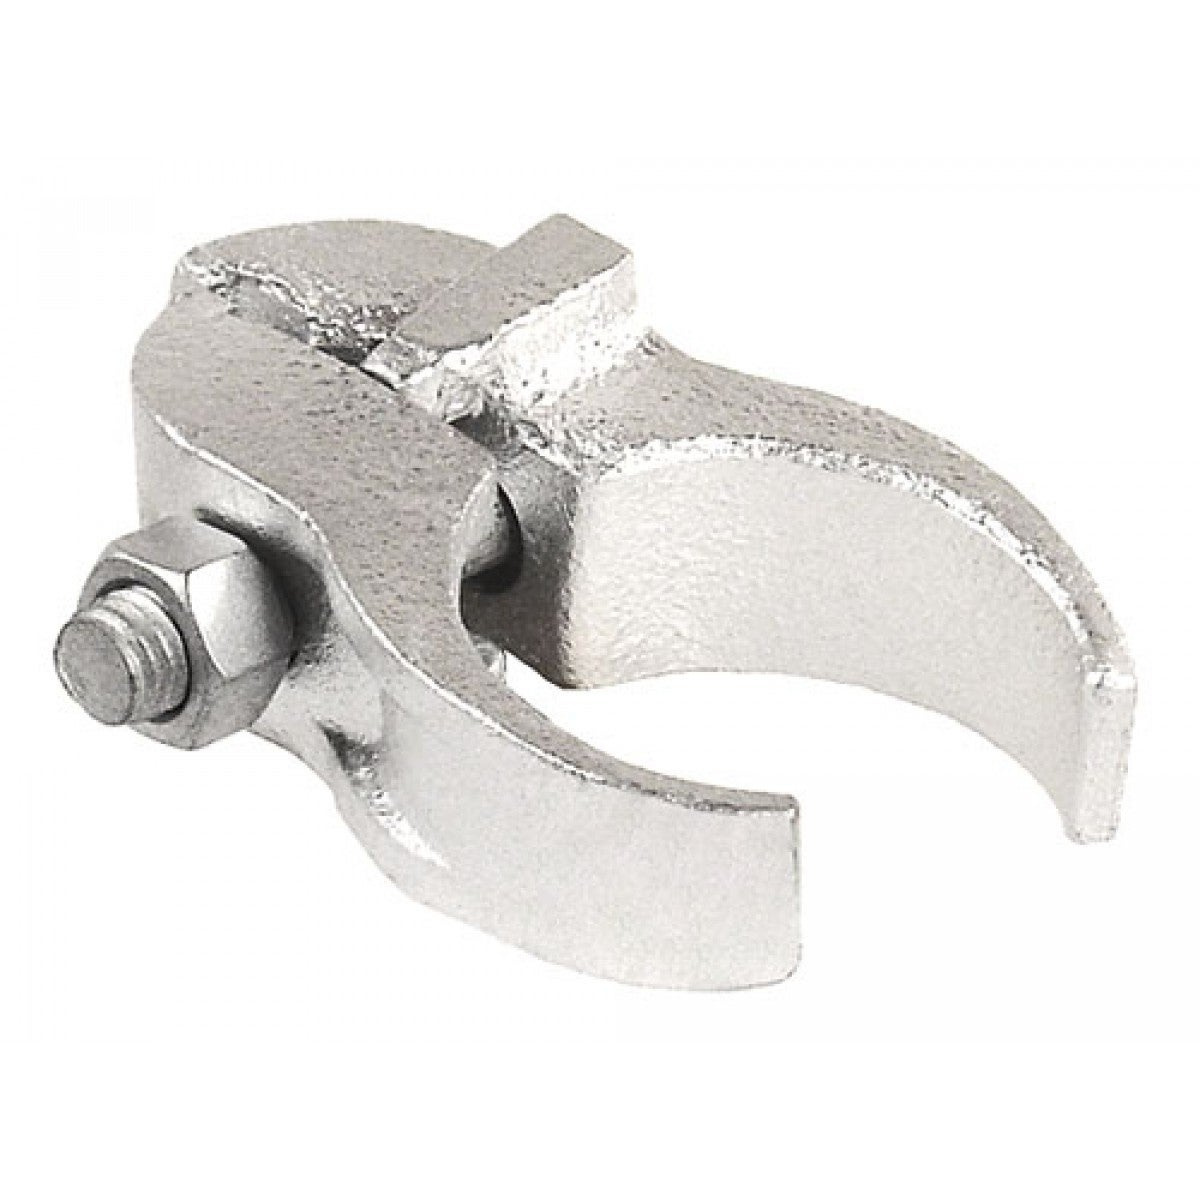 10 Pcs, 3/4 in. Parallel Beam Conduit Clamp, Zinc Plated Iron